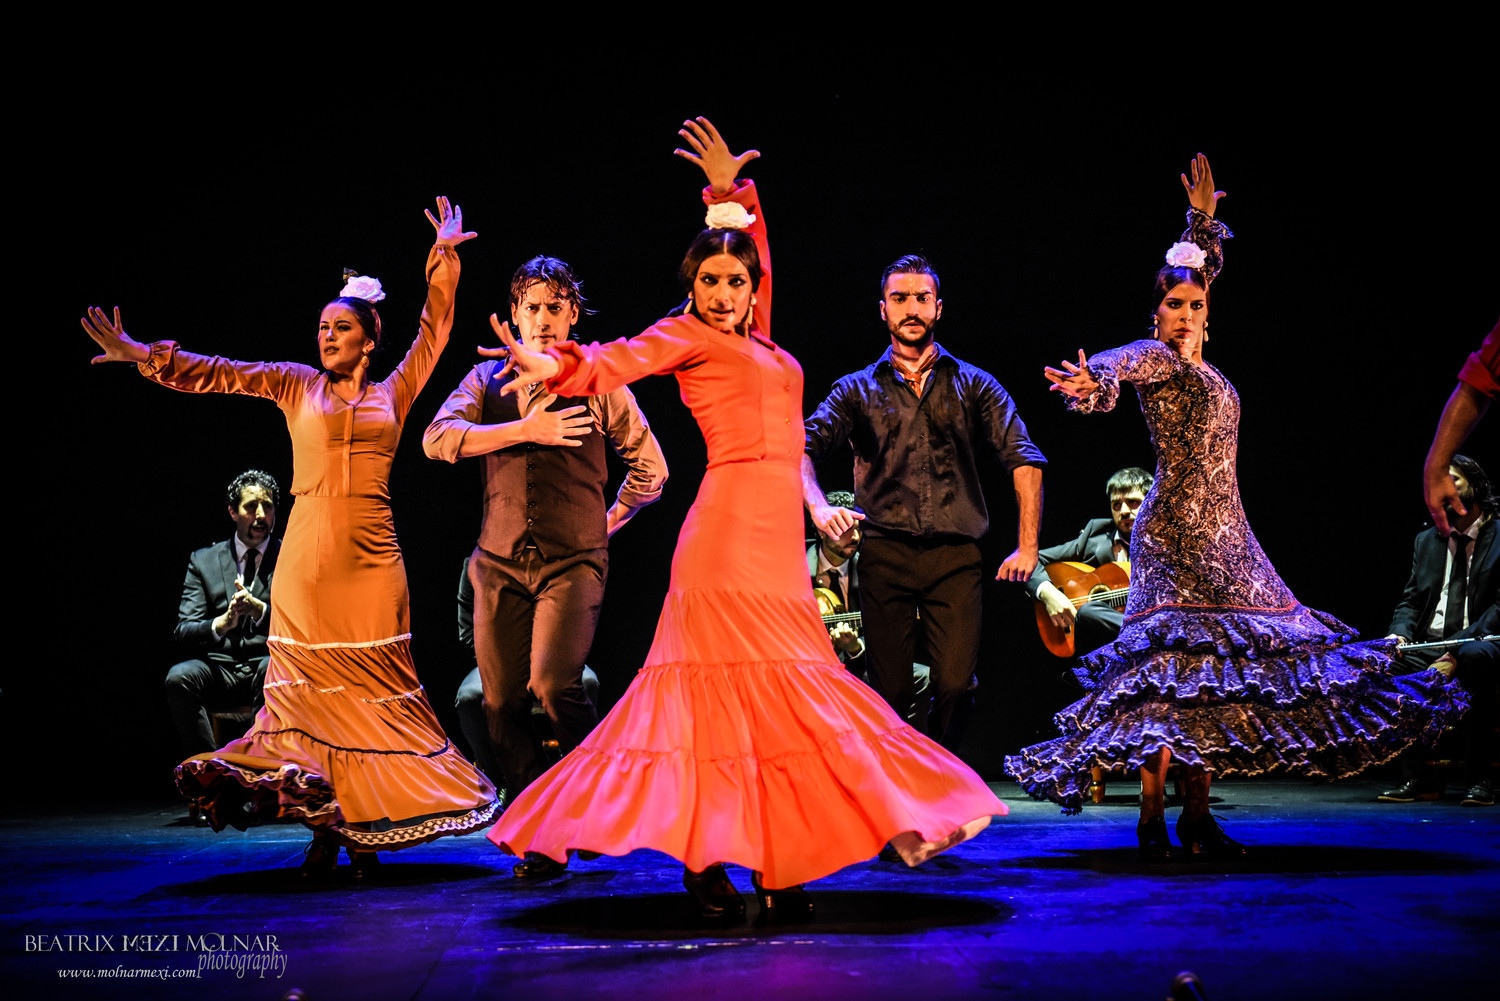 Acclaimed Flamenco dancer-choreographer Edwardo Guerrero and his troupe Compania Flamenca visit the Madison Theatre on Oct. 14.